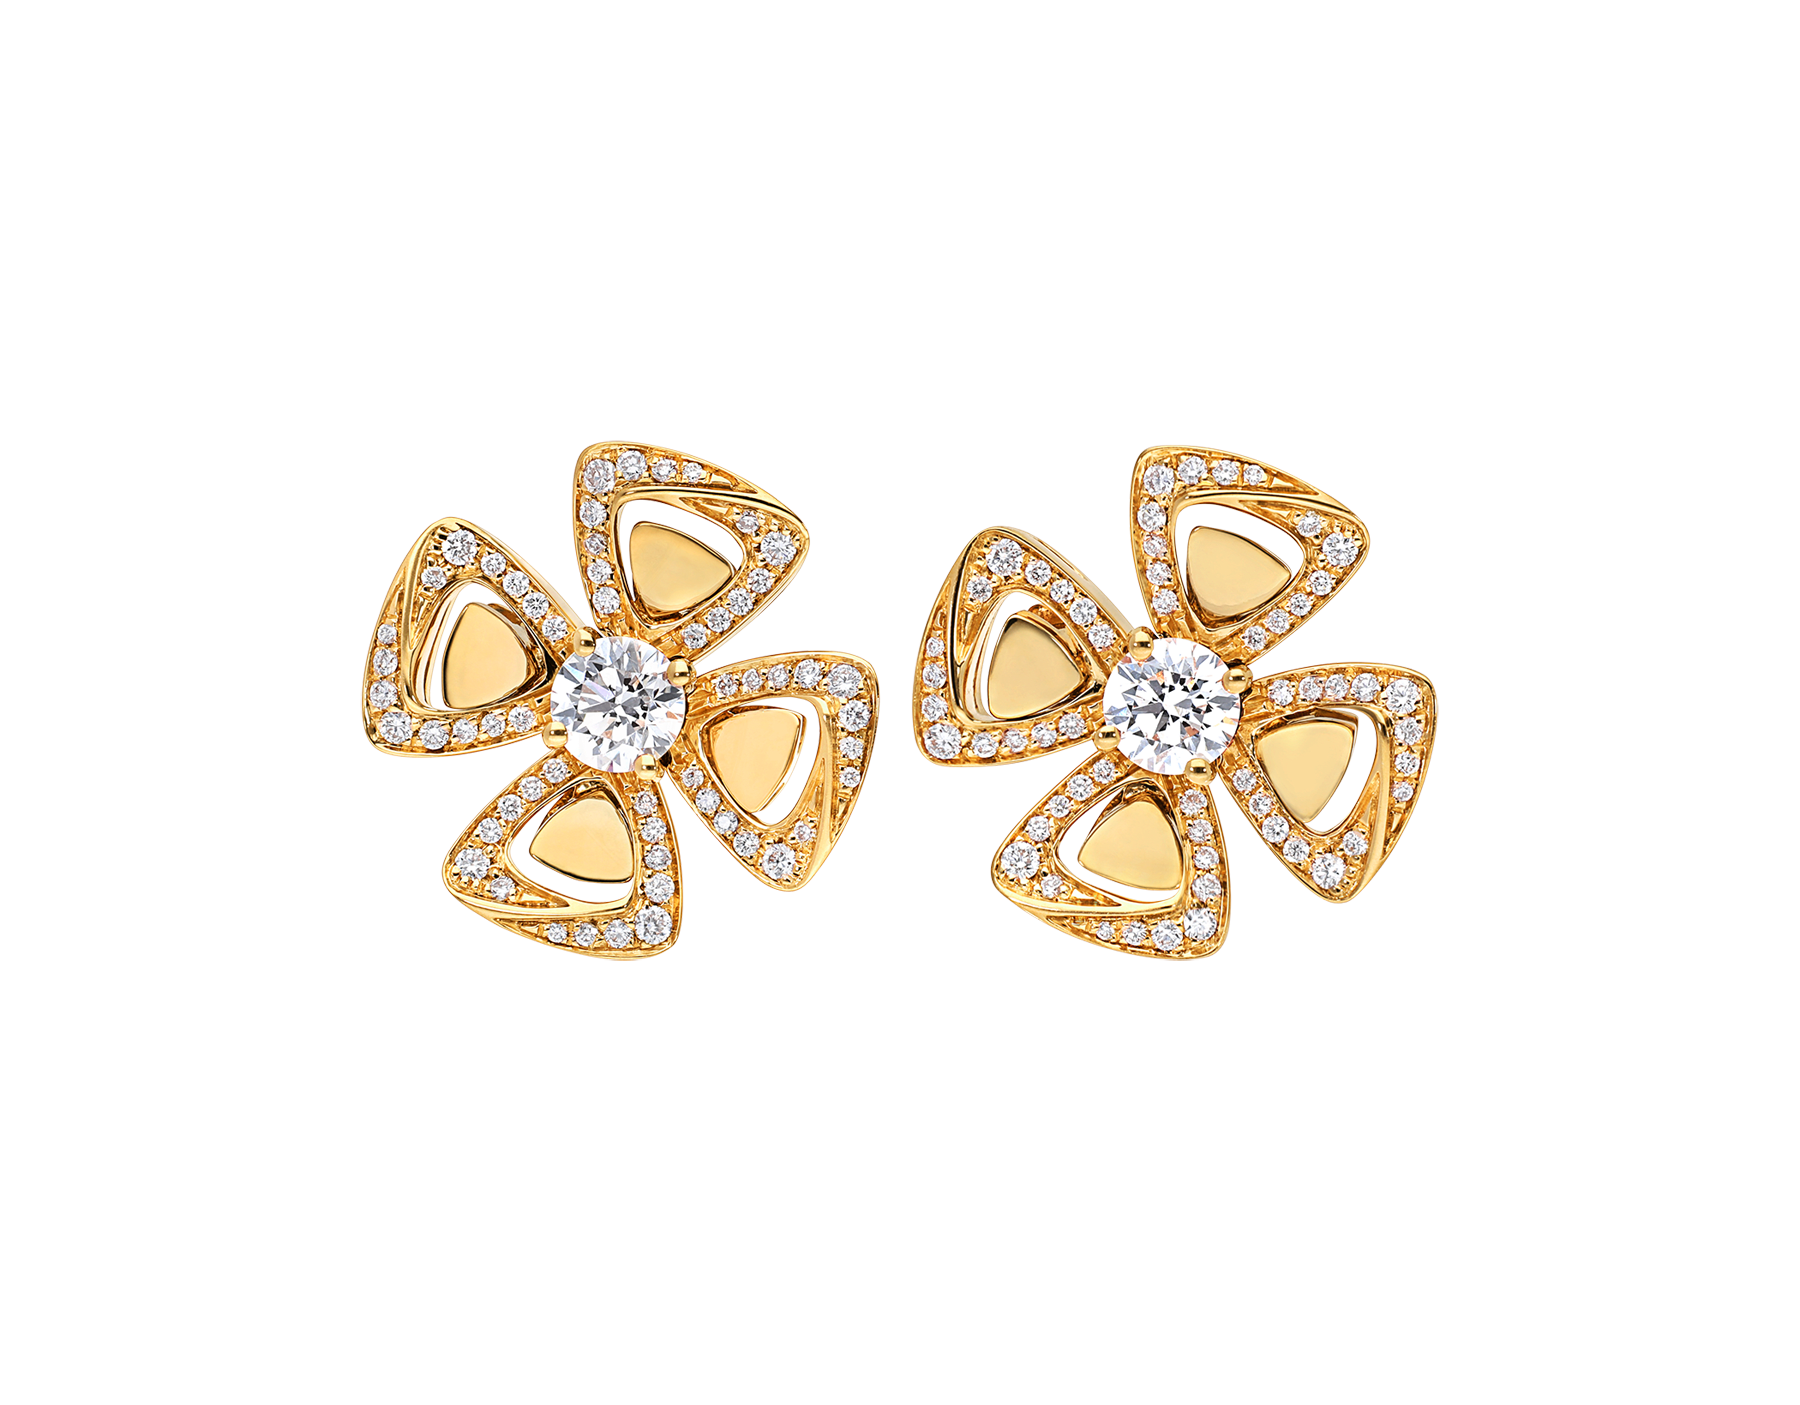 Fiorever 18 kt yellow gold stud earrings, set with two central diamonds and pavé diamonds. 357500 image 1